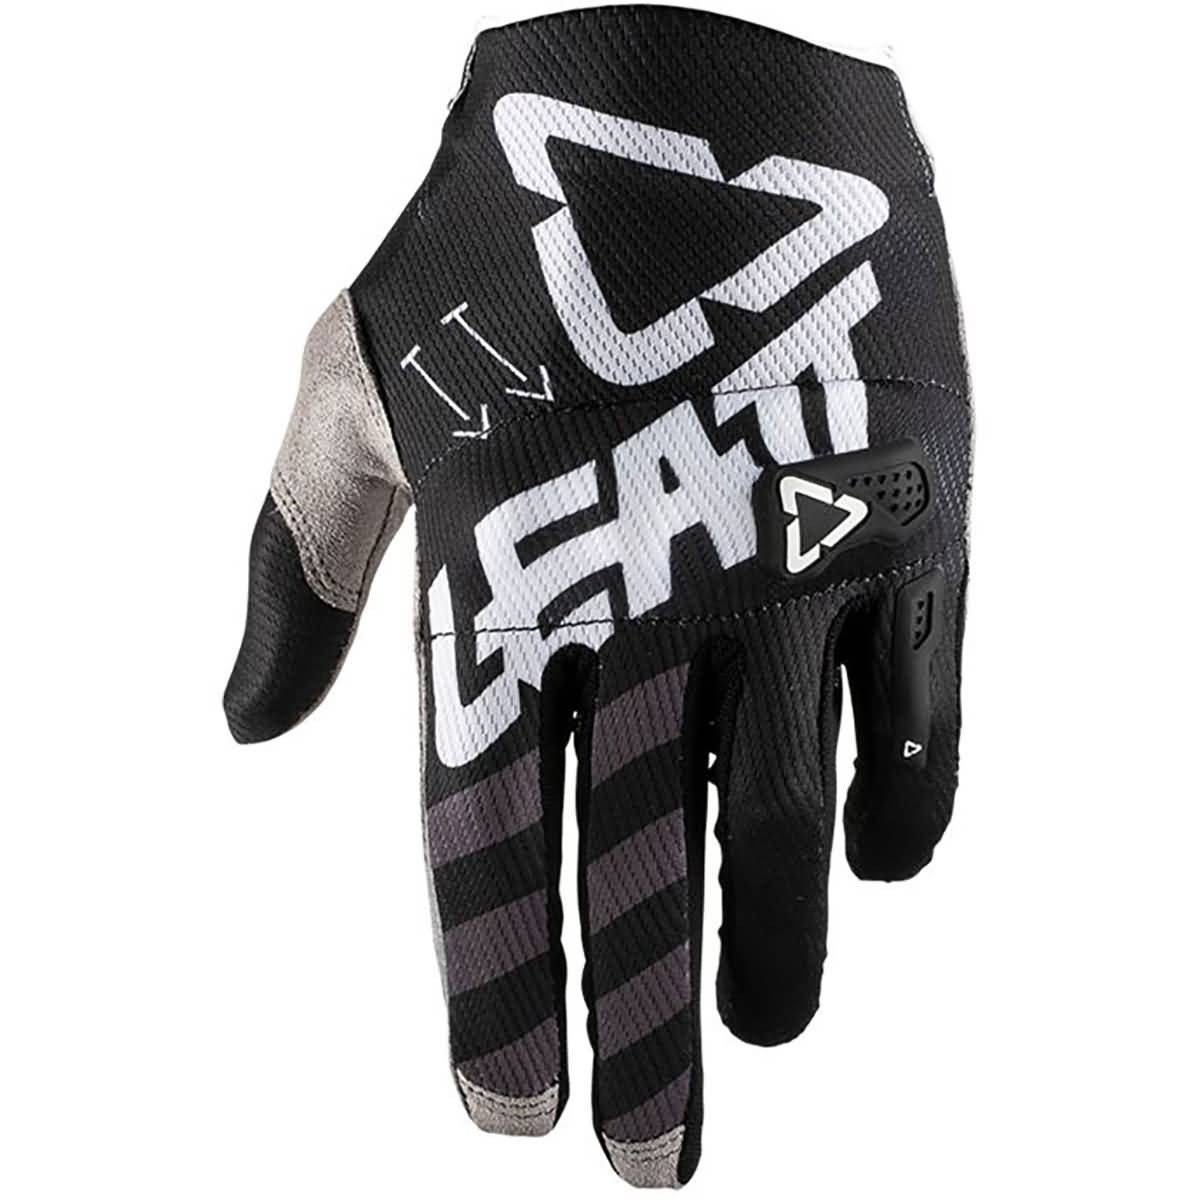 Leatt GPX 3.5 Lite Men's Off-Road Gloves-6019031140